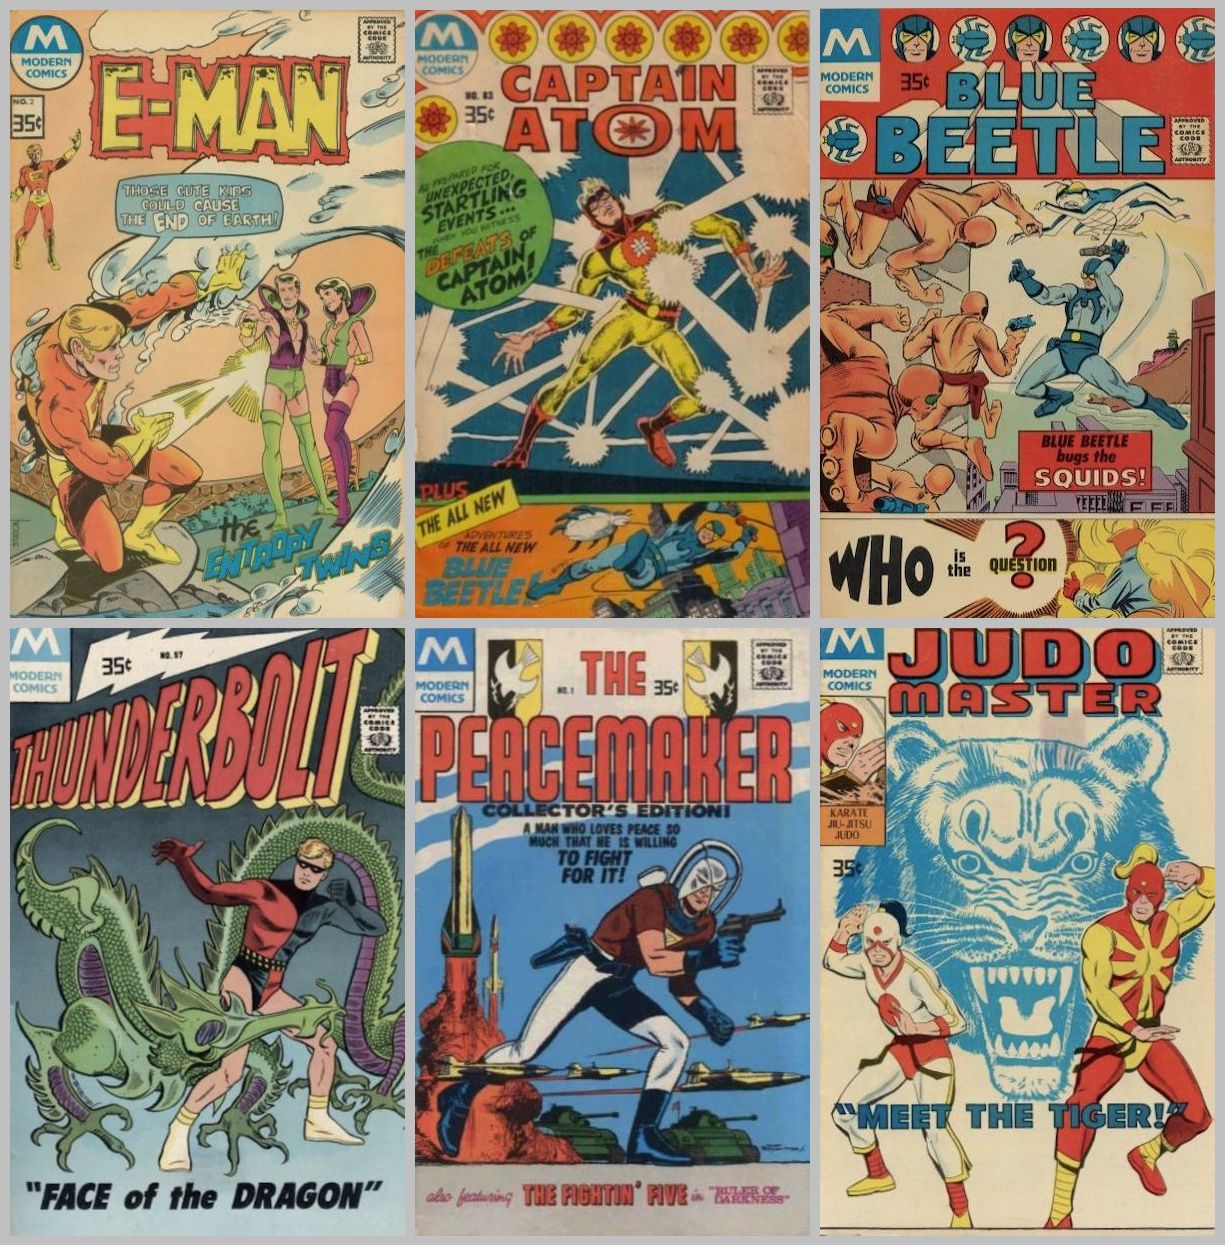 Six Modern covers -- E-Man, Captain Atom, Blue Beetle, Thunderbolt, Peacemaker, and Judomaster -- with heroes all in broadly similar action poses